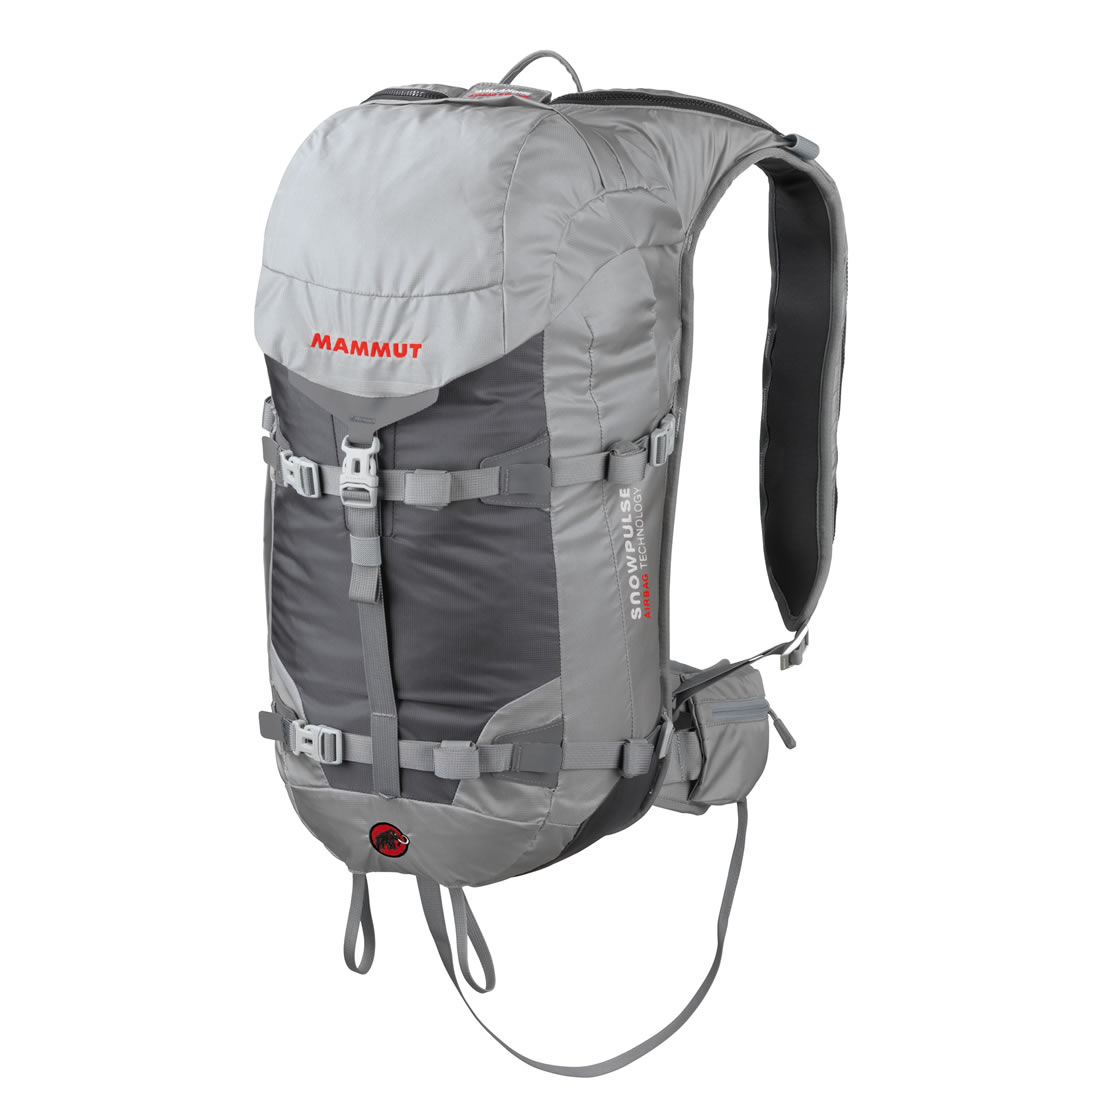 Sac à dos airbag Mammut Light Protection Airbag